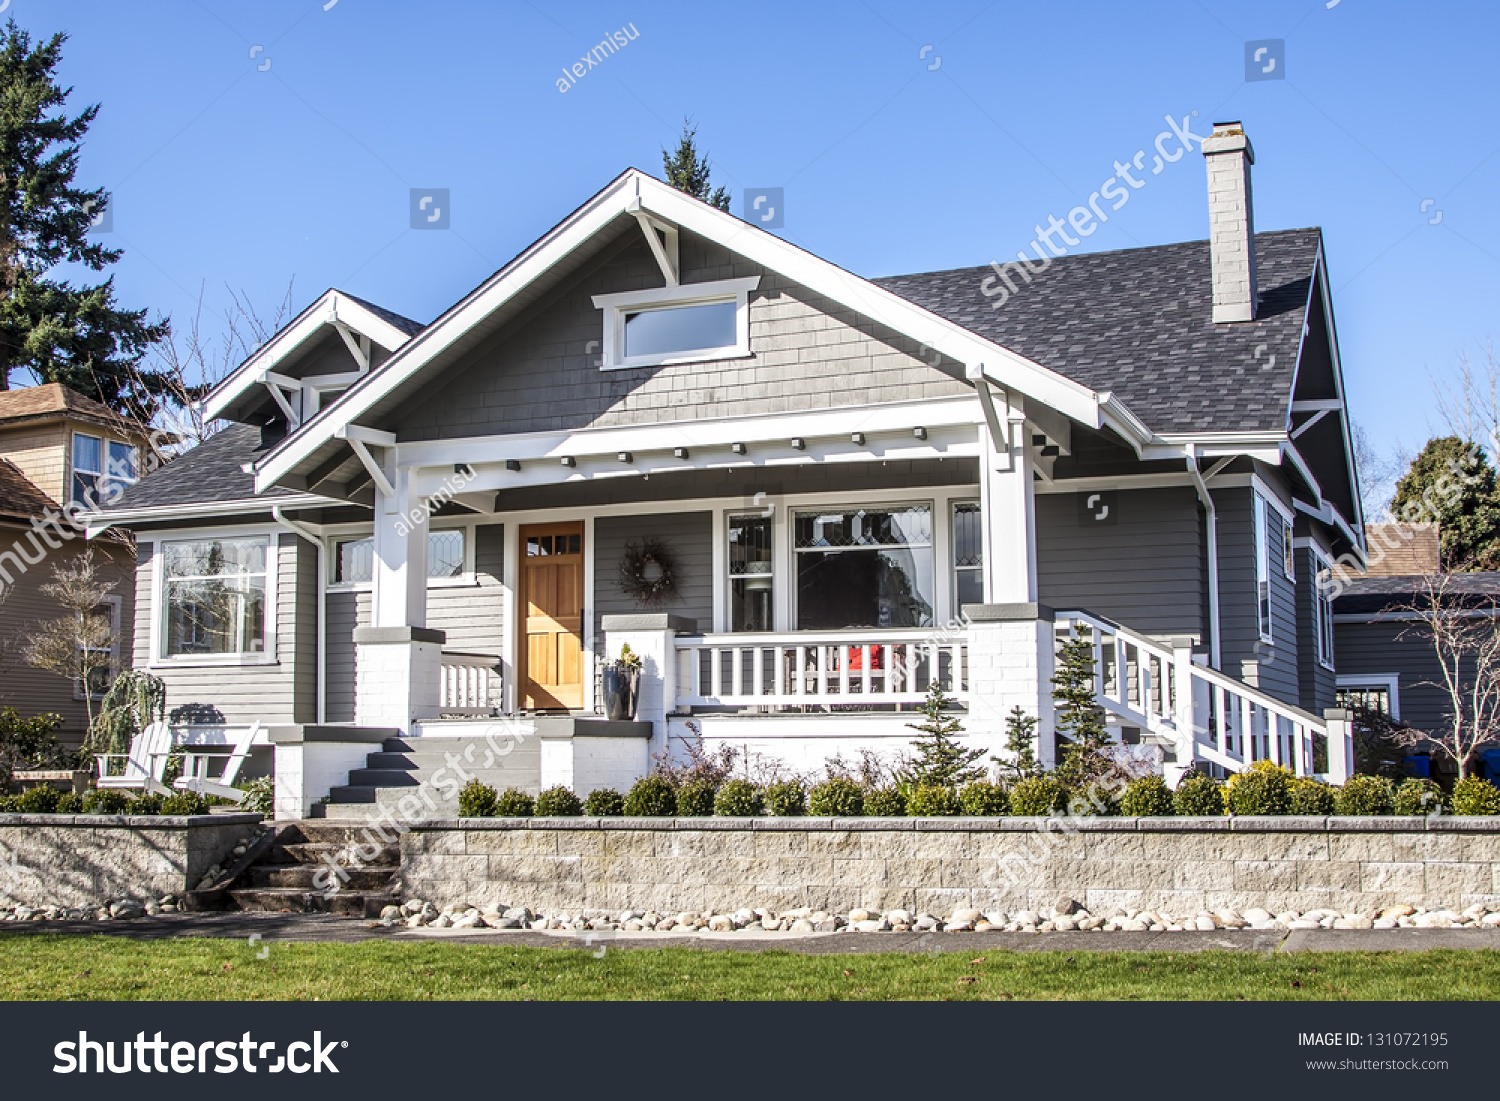 Old american suburban house stock photo 131072195 for Old american houses